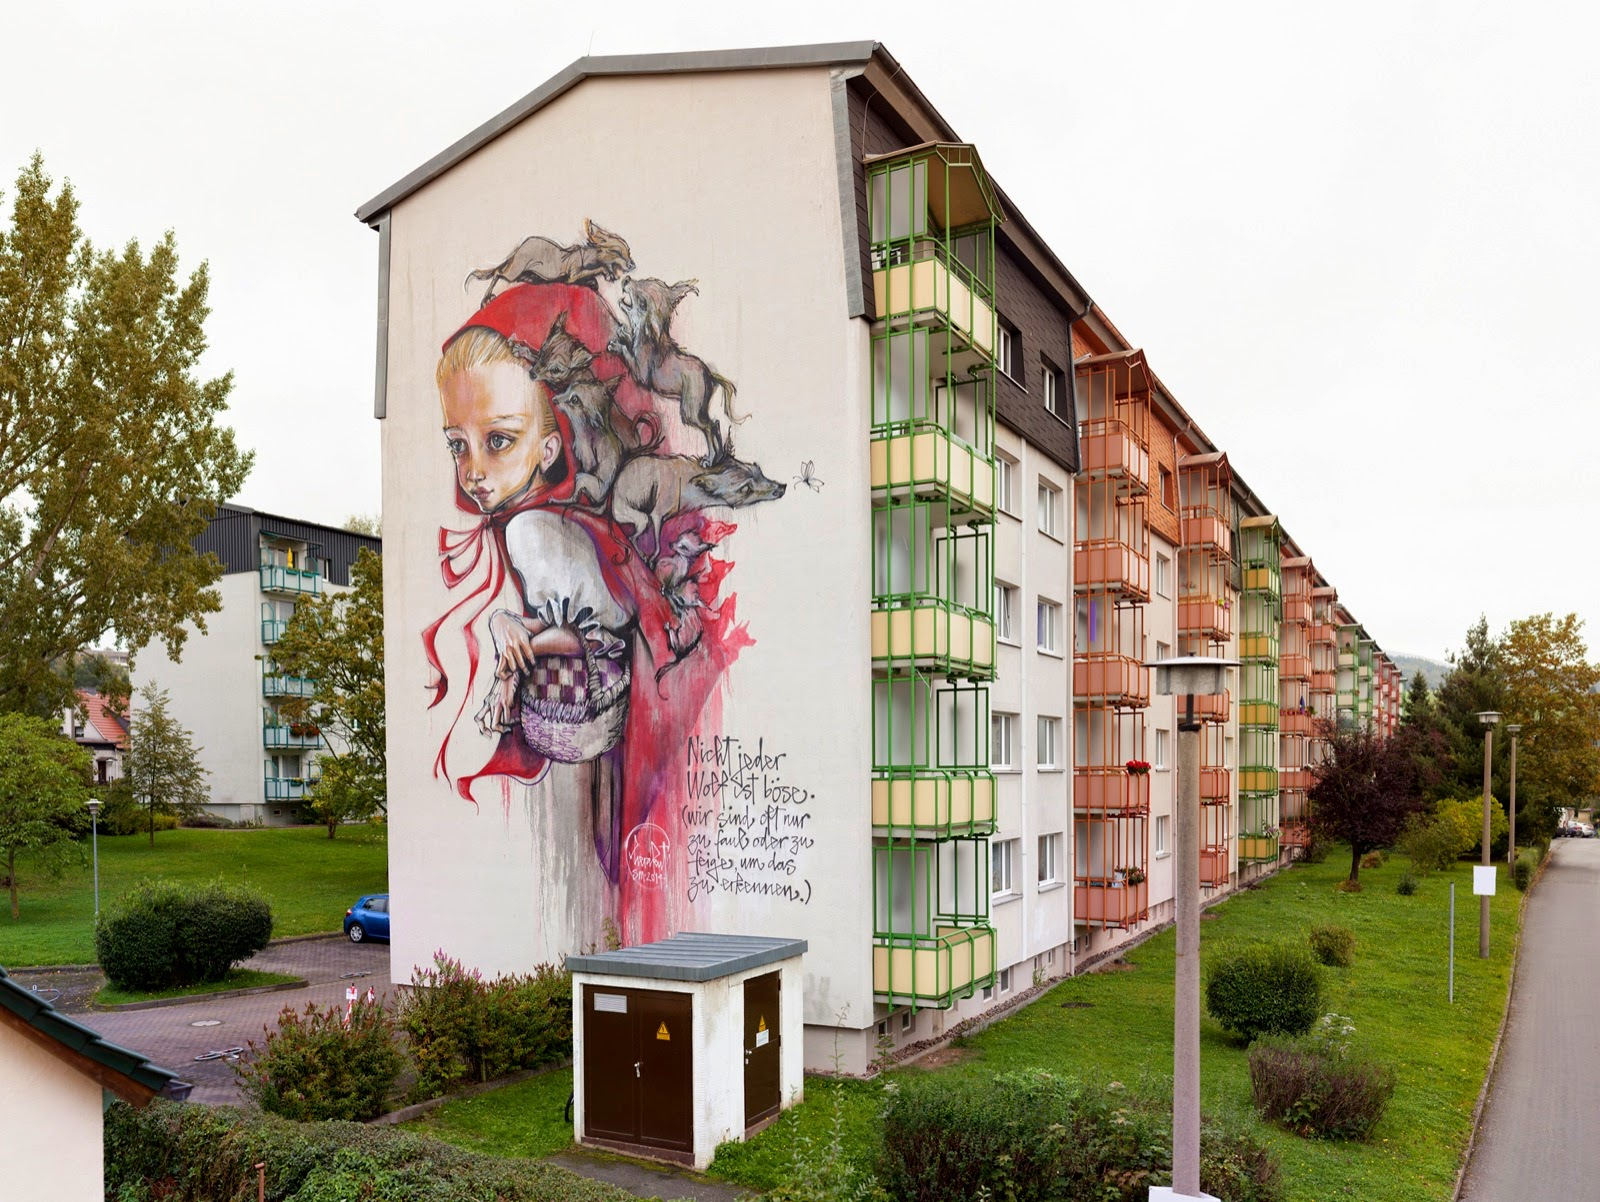 While we last heard from them last August in Turkey, Herakut are now back in Germany where they just finished working on this new piece for the WallCome Festival.